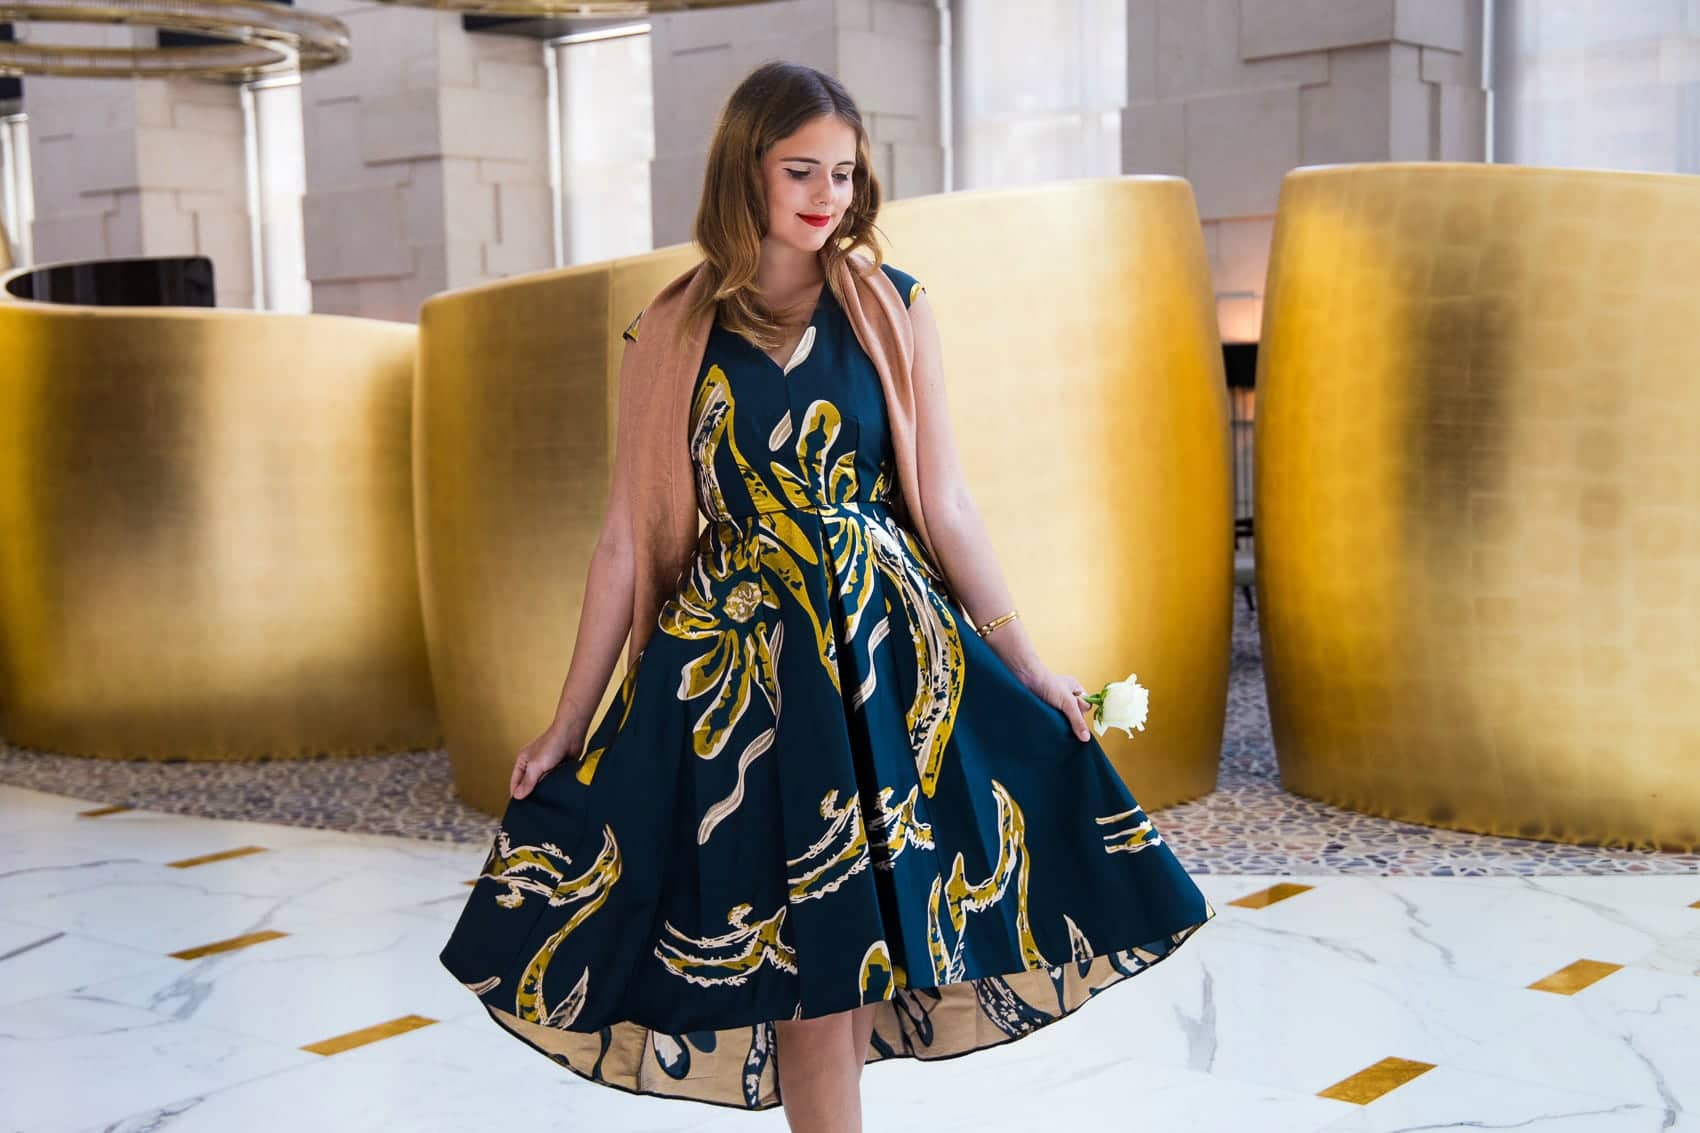 Tausendundeine Nacht in Dubai – Goldenes Abendkleid von Closet London